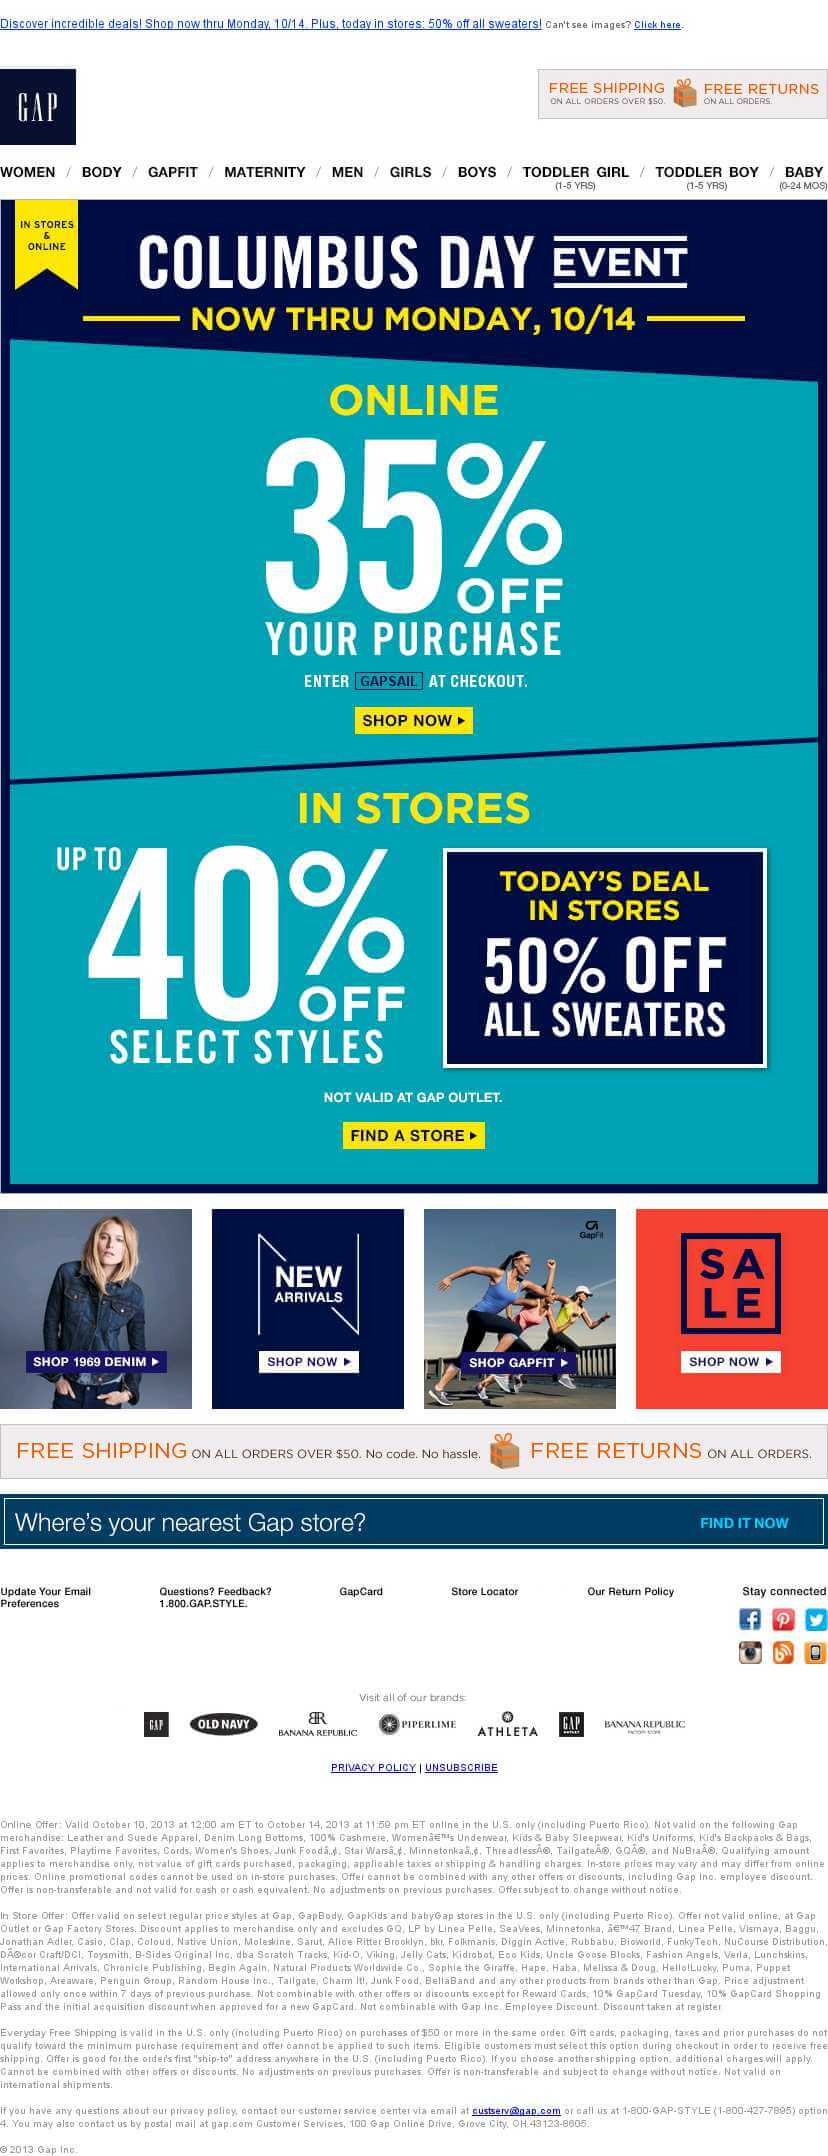 Columbus Day Email Templates- Gap